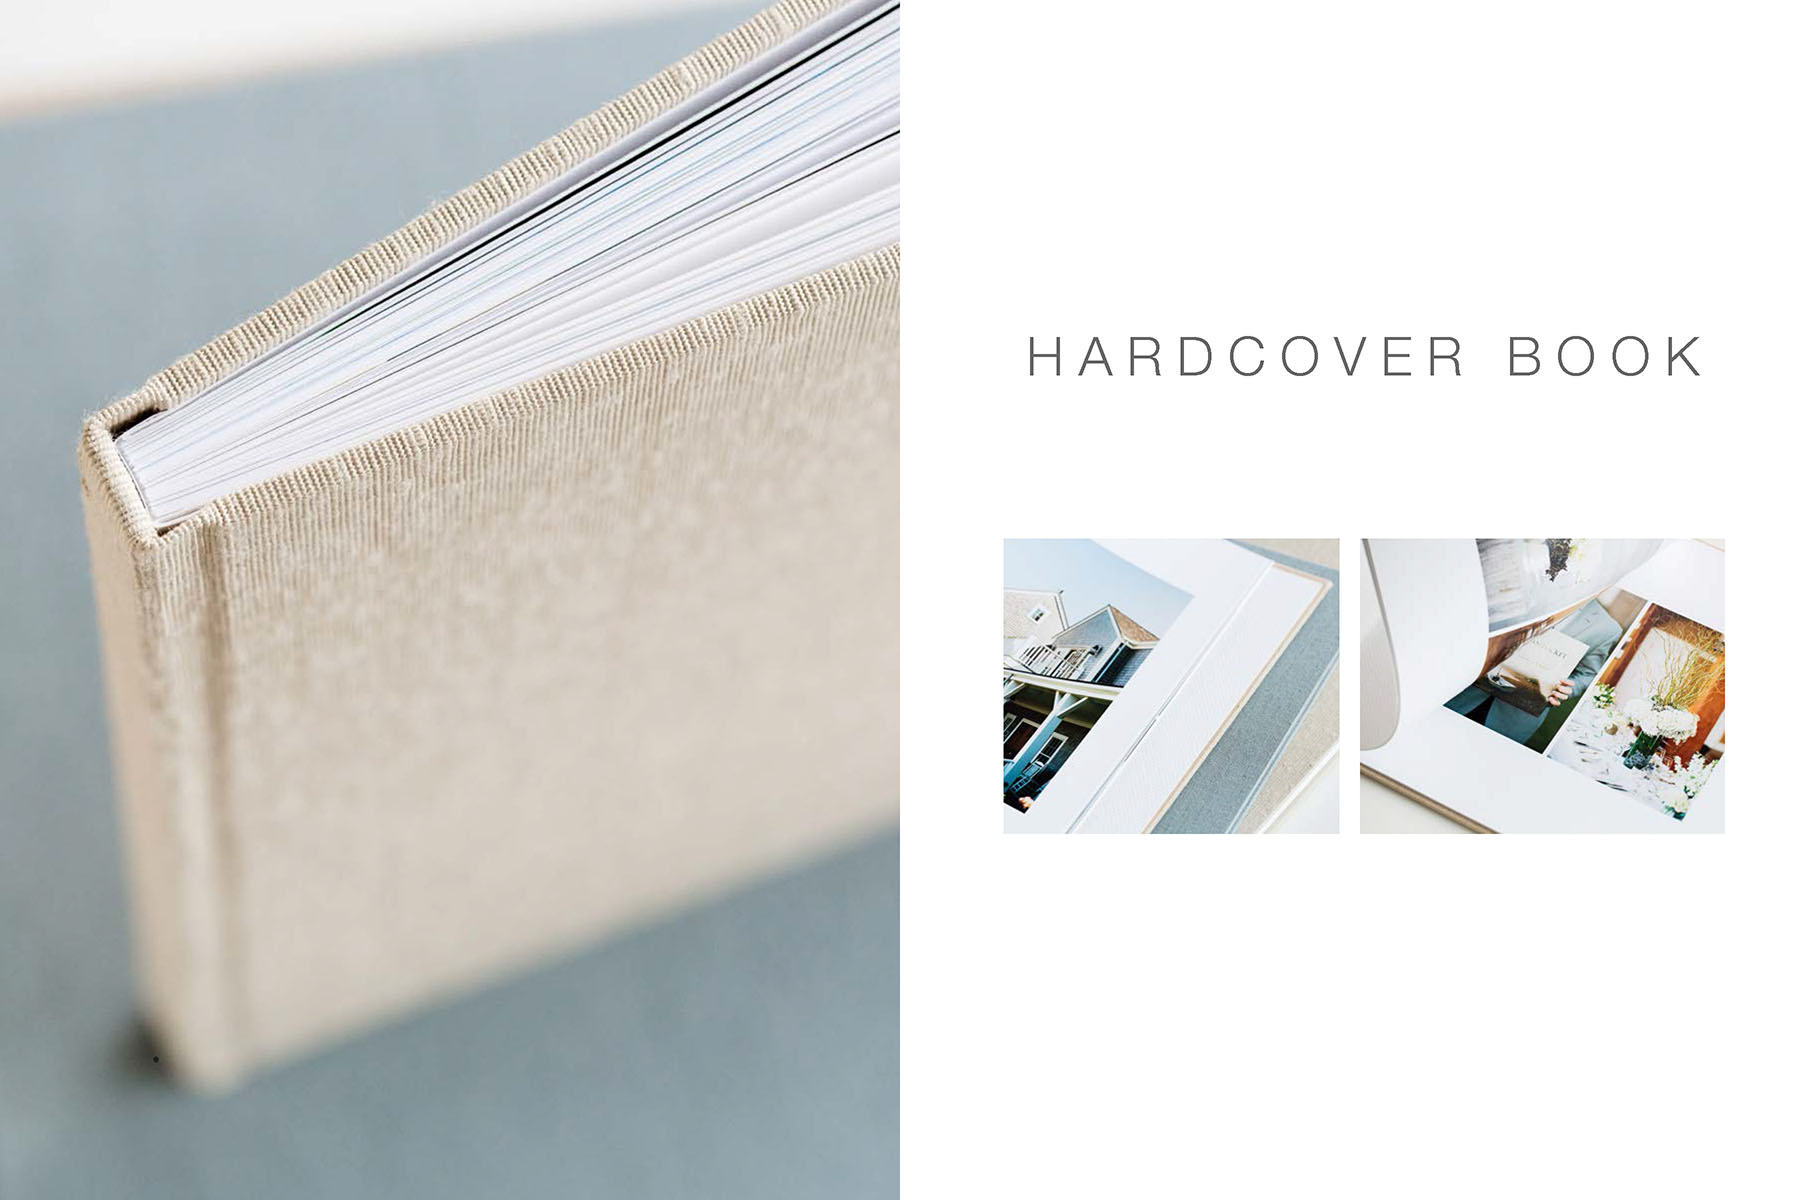 hardcover_book.web